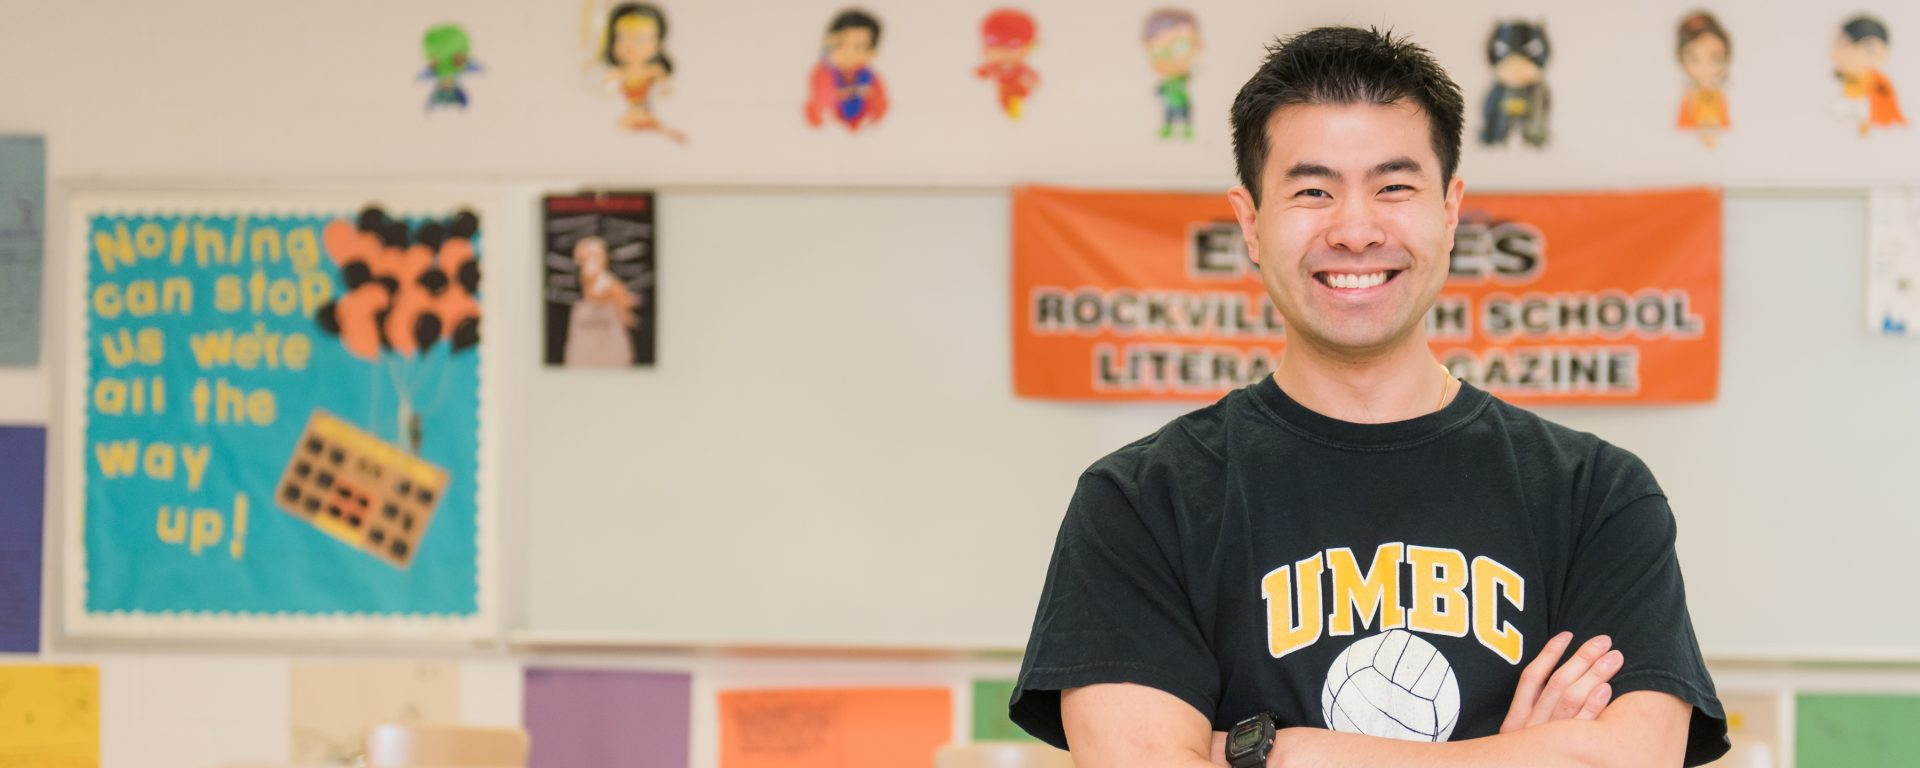 Graduate School alumnus Sean Pang named 2019 Claes Nobel Educator of the Year